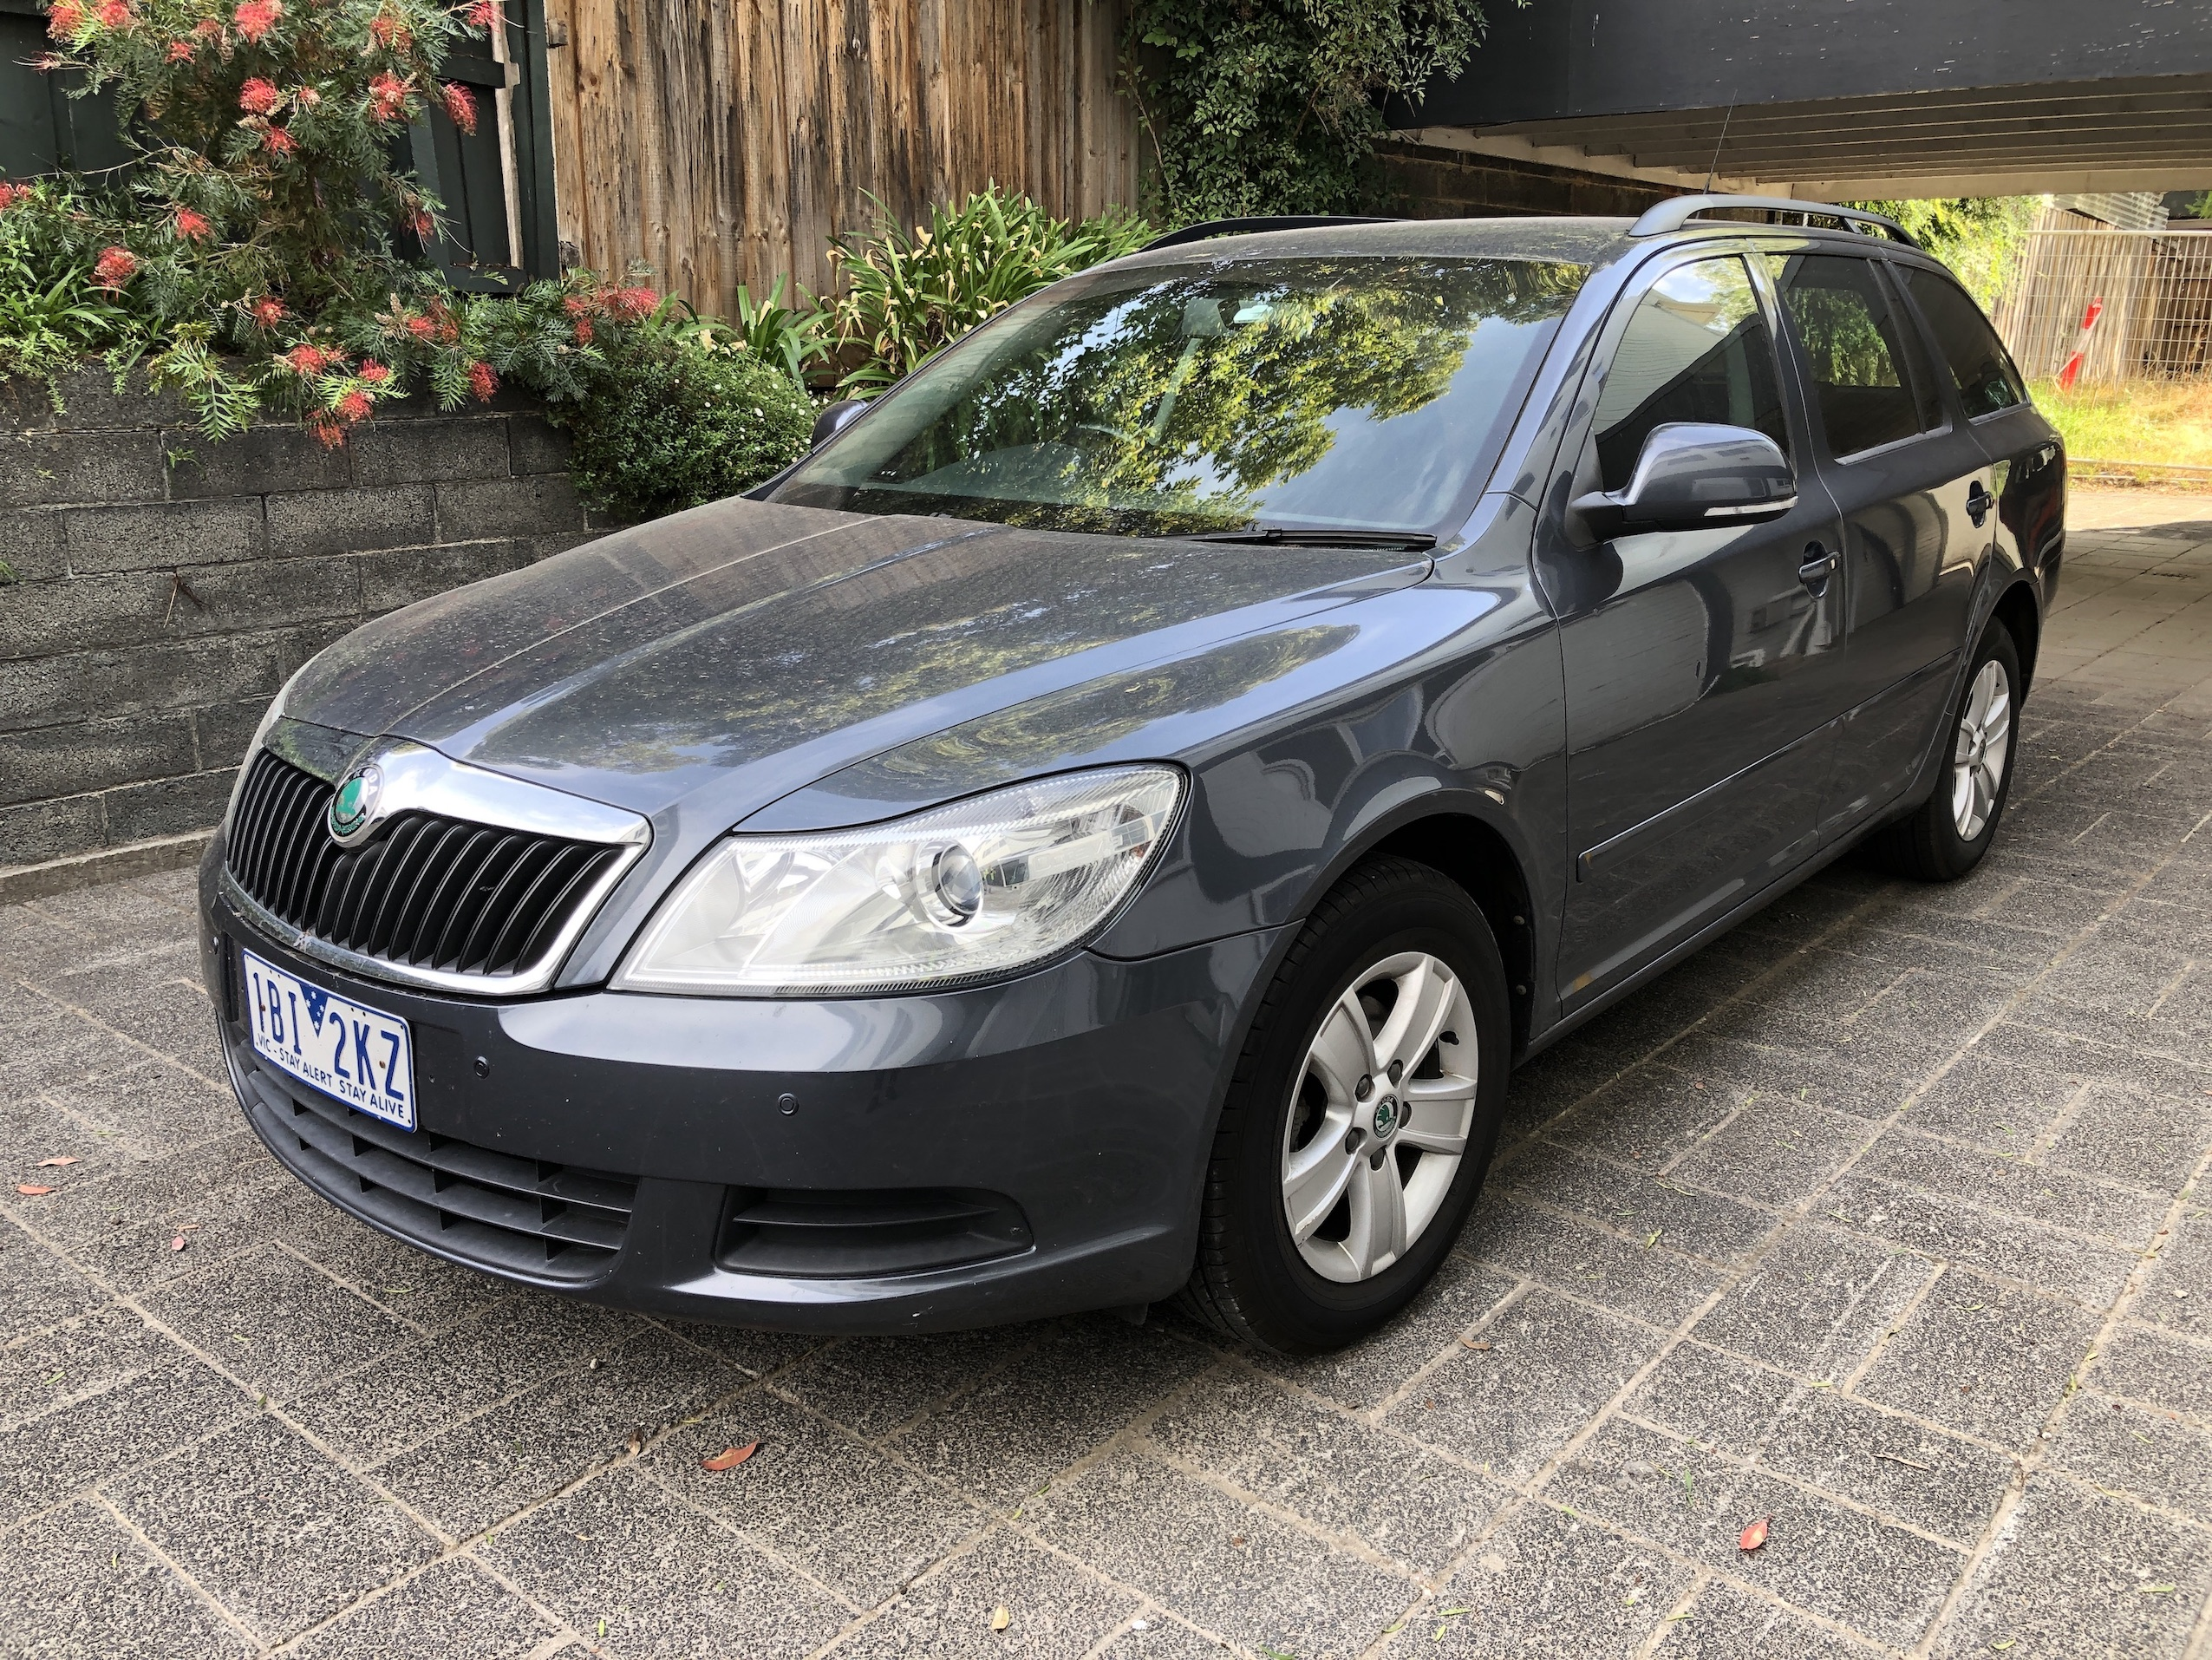 Picture of Jason's 2012 Skoda Octavia